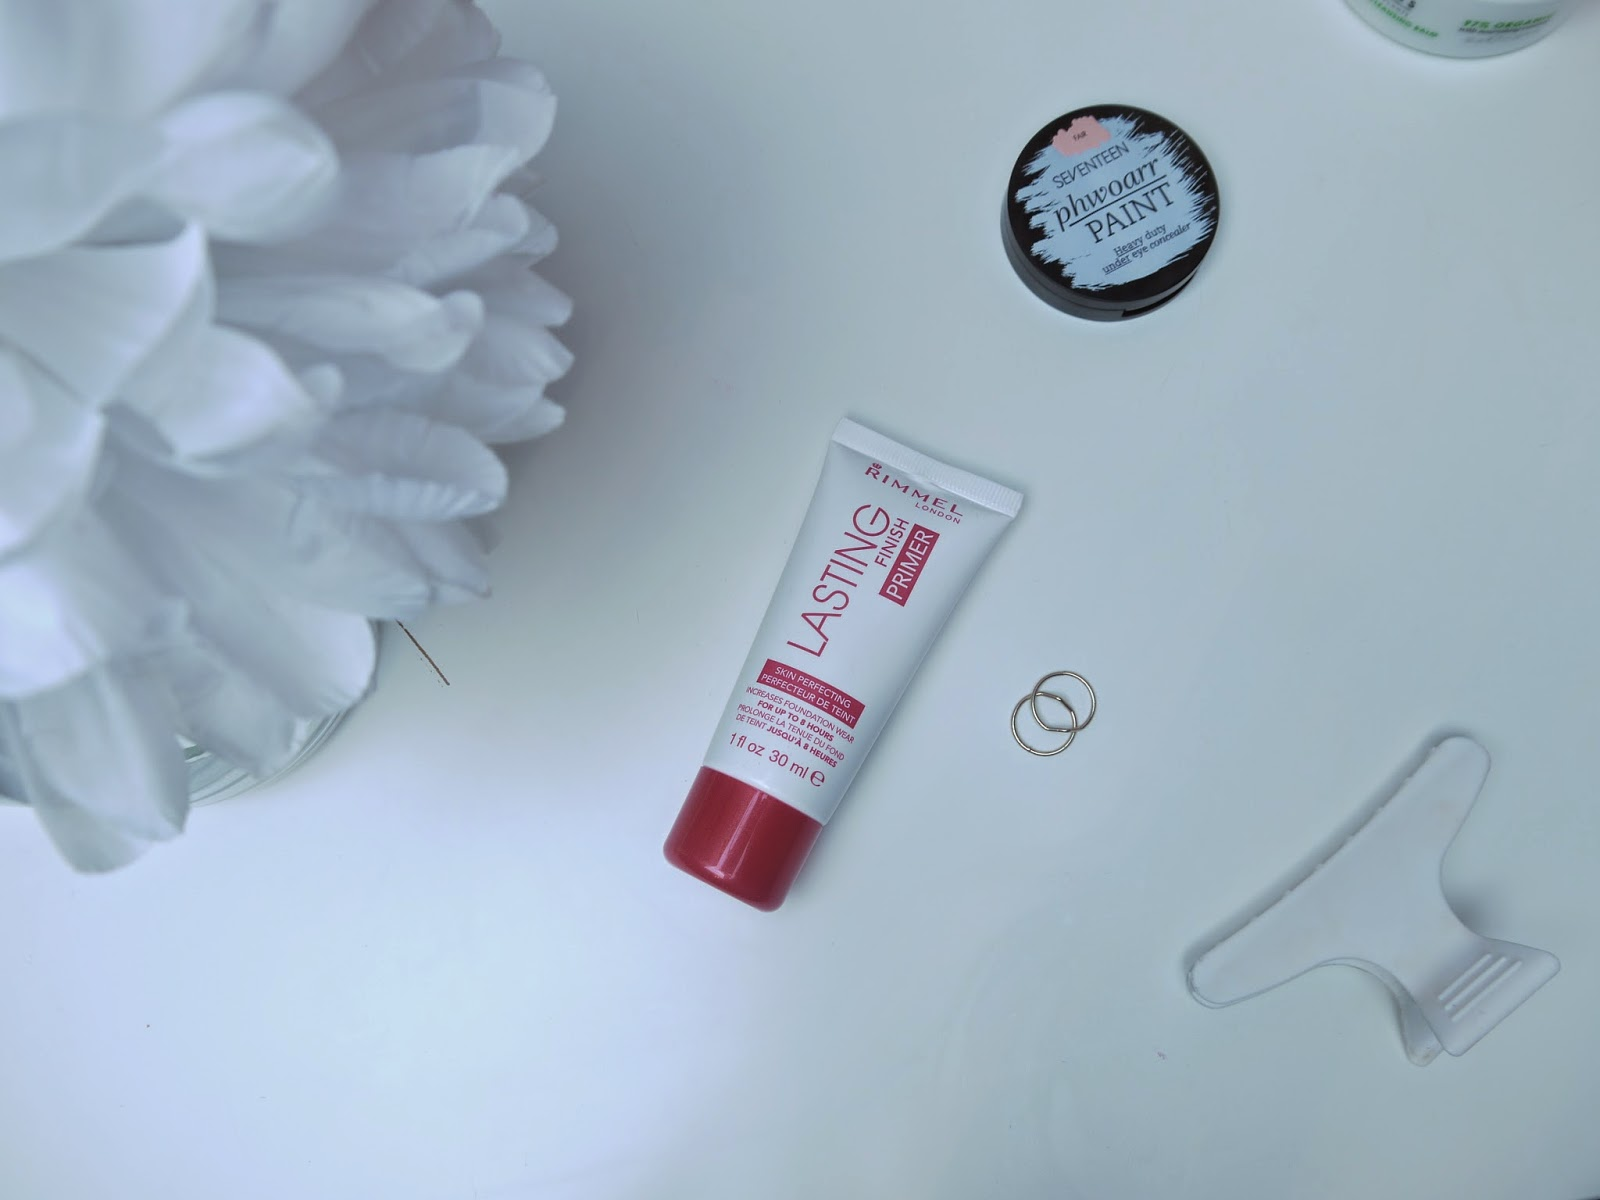 Rimmel_Lasting_Finish_Primer_Review